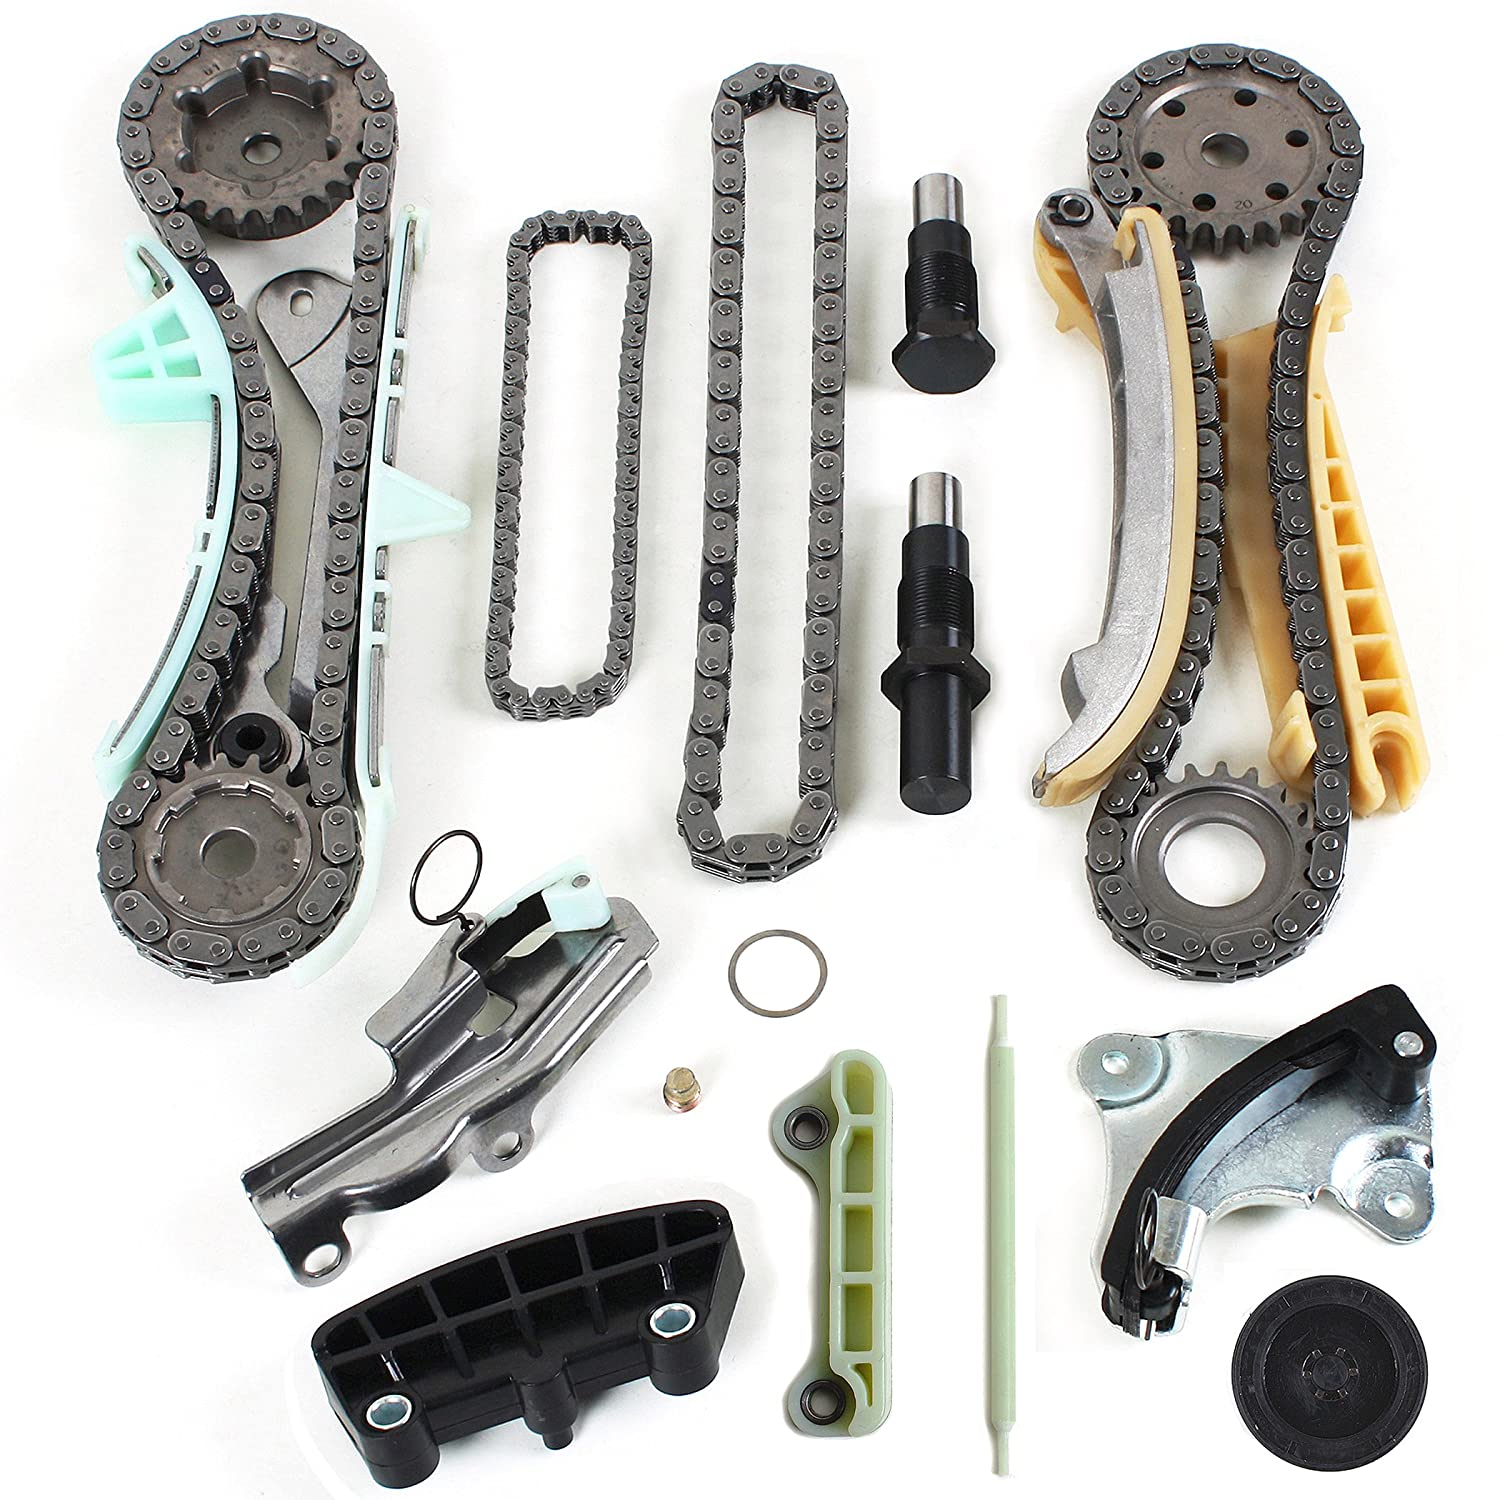 Brand New TK4090 Timing Chains Gears Tensioners Guide Rails Kit for 97-11 Ford Mazda Mercury 4.0L 245 SOHC Engine, VIN Code 'E' 'K' 'N' VIN Code E K N CNS EngineParts